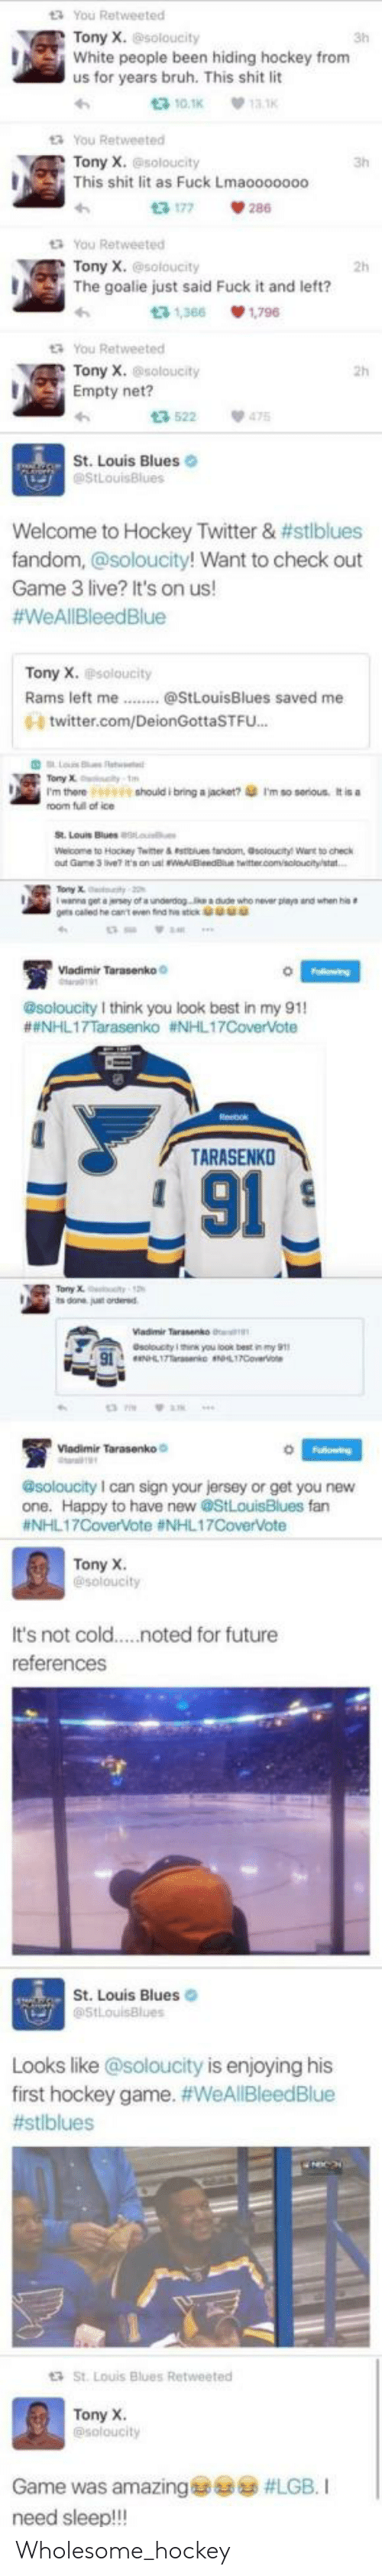 Bruh, Future, and Hockey: t3 You Retweeted  Tony X.soloucity  White people been hiding hockey from  us for years bruh. This shit lit  3h  t3 10.1K  13.1K  t You Retweeted  Tony X. @soloucity  This shit lit as Fuck Lmaooo0000  13 177  tYou Retweeted  Tony X.@soloucity  2h  The goalie just said Fuck it and left?  t3 1,366  1.796  t3 You Retweeted  Tony X. @soloucity  Empty net?  13 522  475  St. Louis Blues  StLouisBlues  Welcome to Hockey Twitter & #stlblues  fandom, @soloucity! Want to check out  Game 3 live? It's on us!  #WeAllBleedBlue  Tony X. soloucity  Rams left me.  @StLouisBlues saved me  0- twitter.com/DeionGottaSTFU...  Falowing  esoloucity I think you oo my 91  #NHL17Tarasenko #NHL17CoverVote  TARASENKO  91  @soloucity I can sign your jersey of get you hew  fan  #NHL17CoverVote #NHL17CoverVote  Tony X  @soloucity  It's not cold  .noted for future  references  St. Louis Blues  @StLouisBlues  Looks like @soloucity is enjoying his  first hockey game. #WeAllBleedBlue  #stlblues  St. Louis Blues Retweeted  Tony X.  @soloucity  Game was amazing  #LGB. I  need sleep!!! Wholesome_hockey